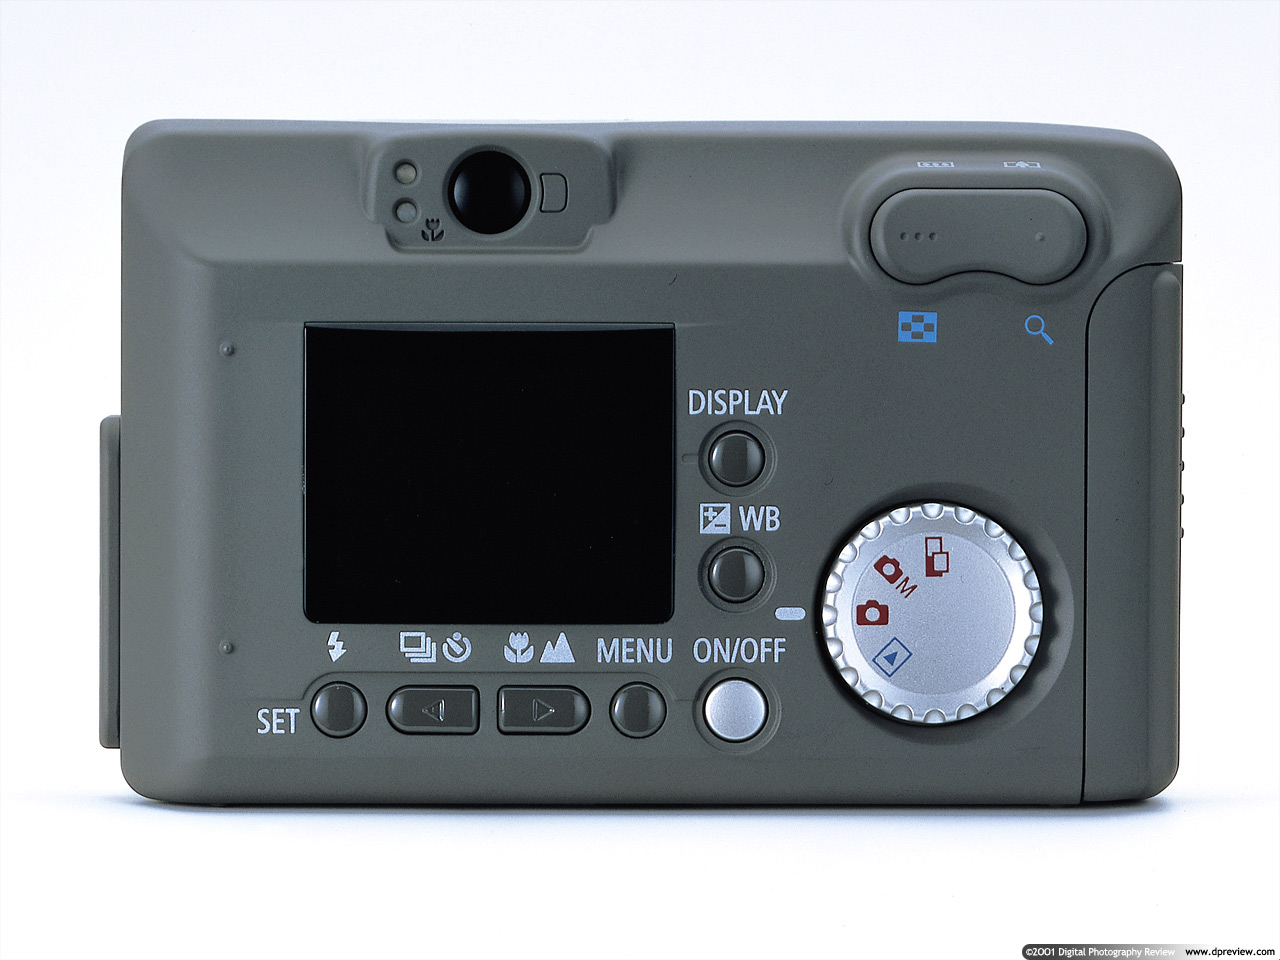 CANON POWERSHOT A10 CAMERA WINDOWS 8.1 DRIVER DOWNLOAD